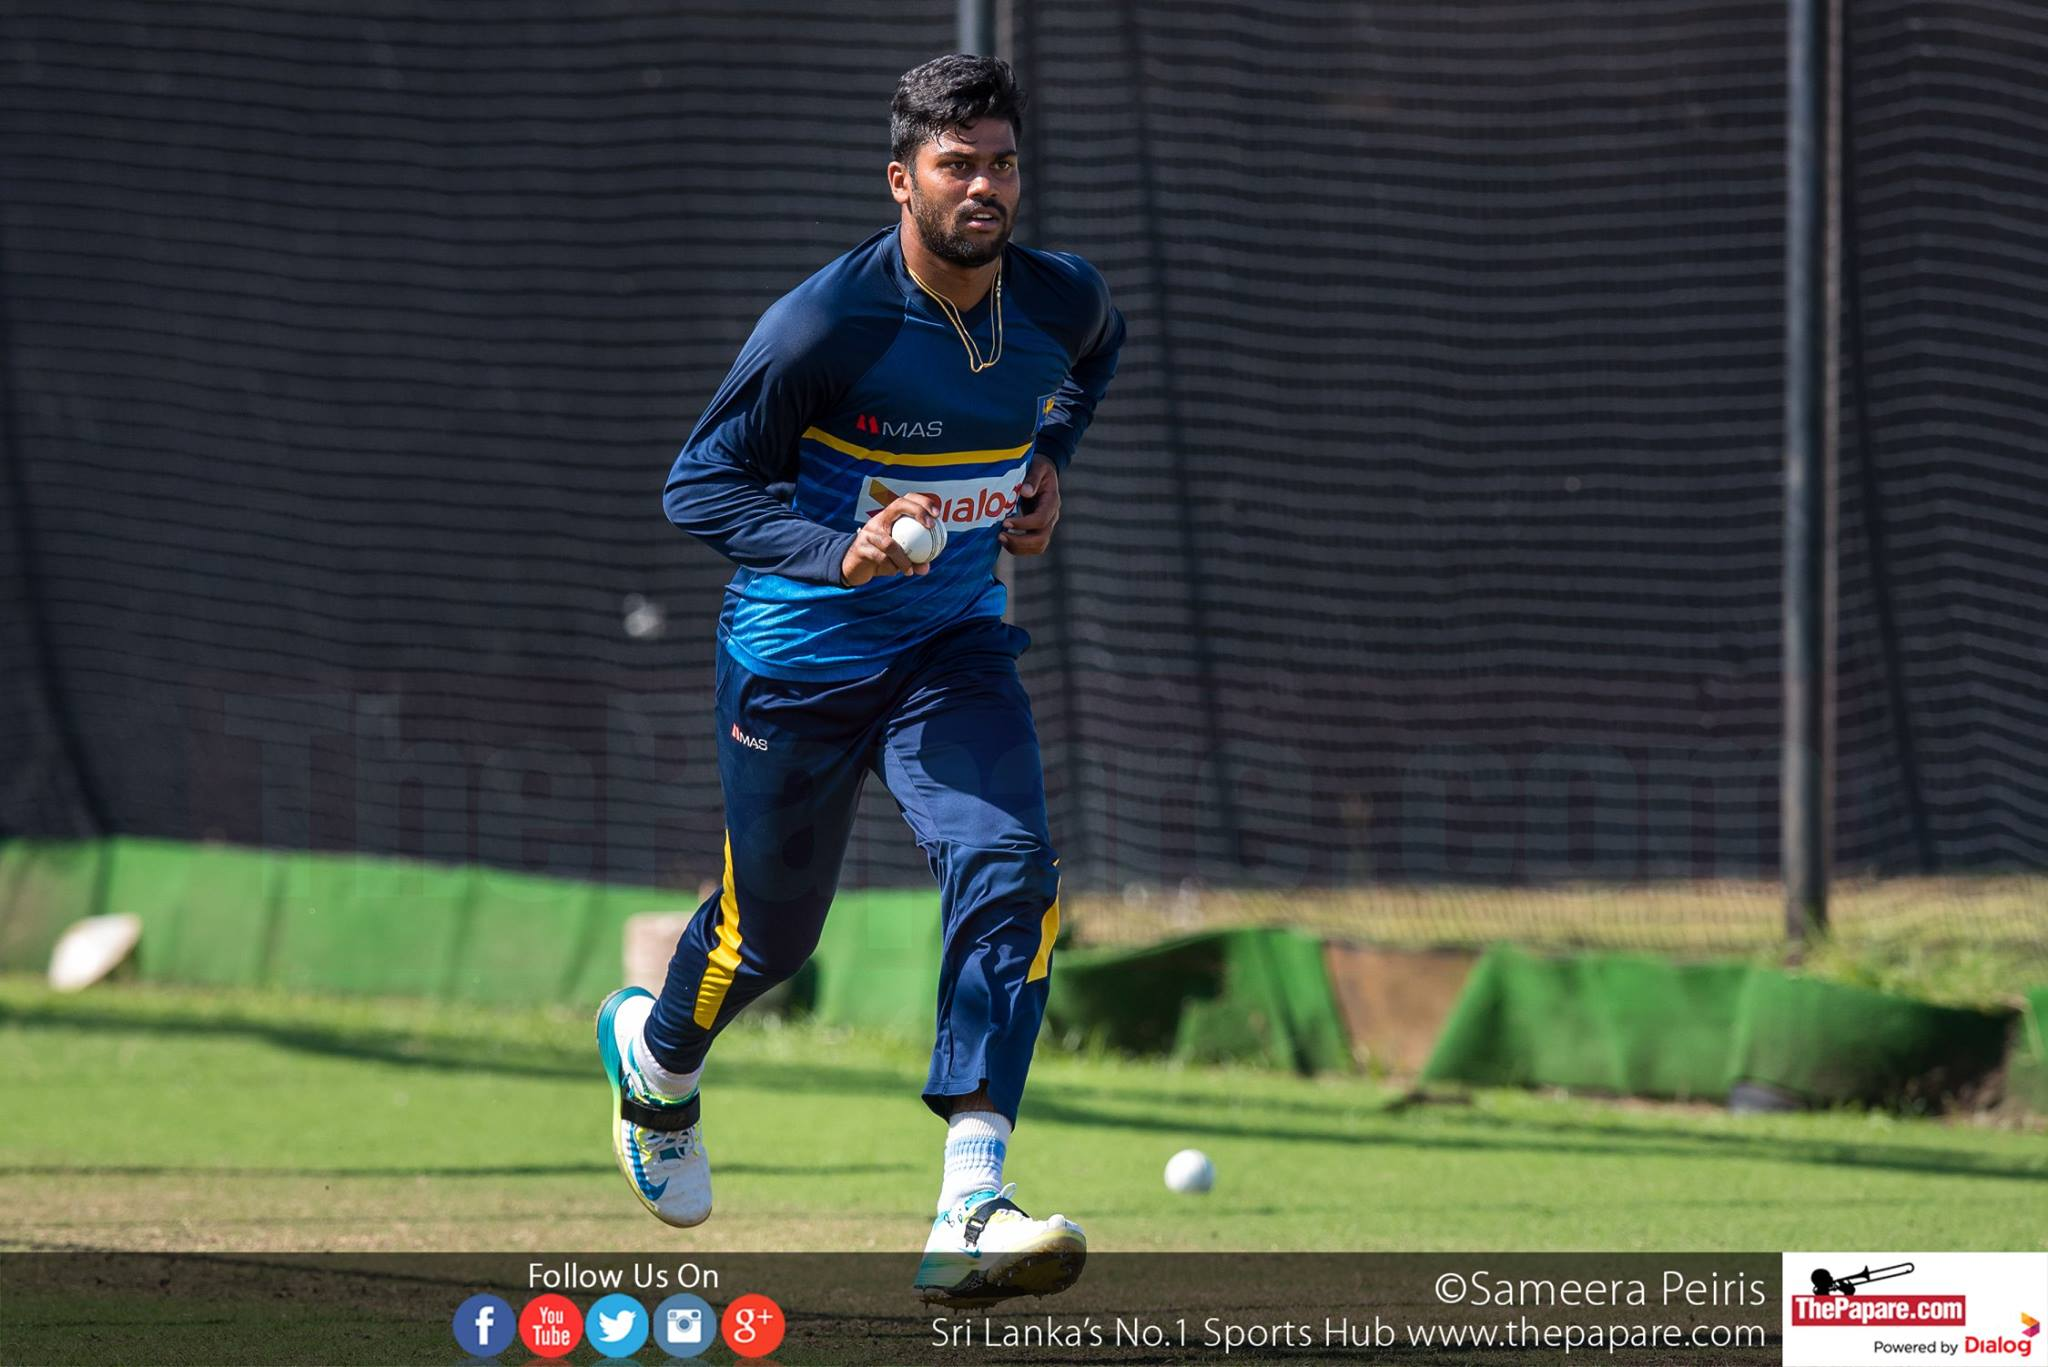 SLvSA Team Practices Ahead of 2nd ODI